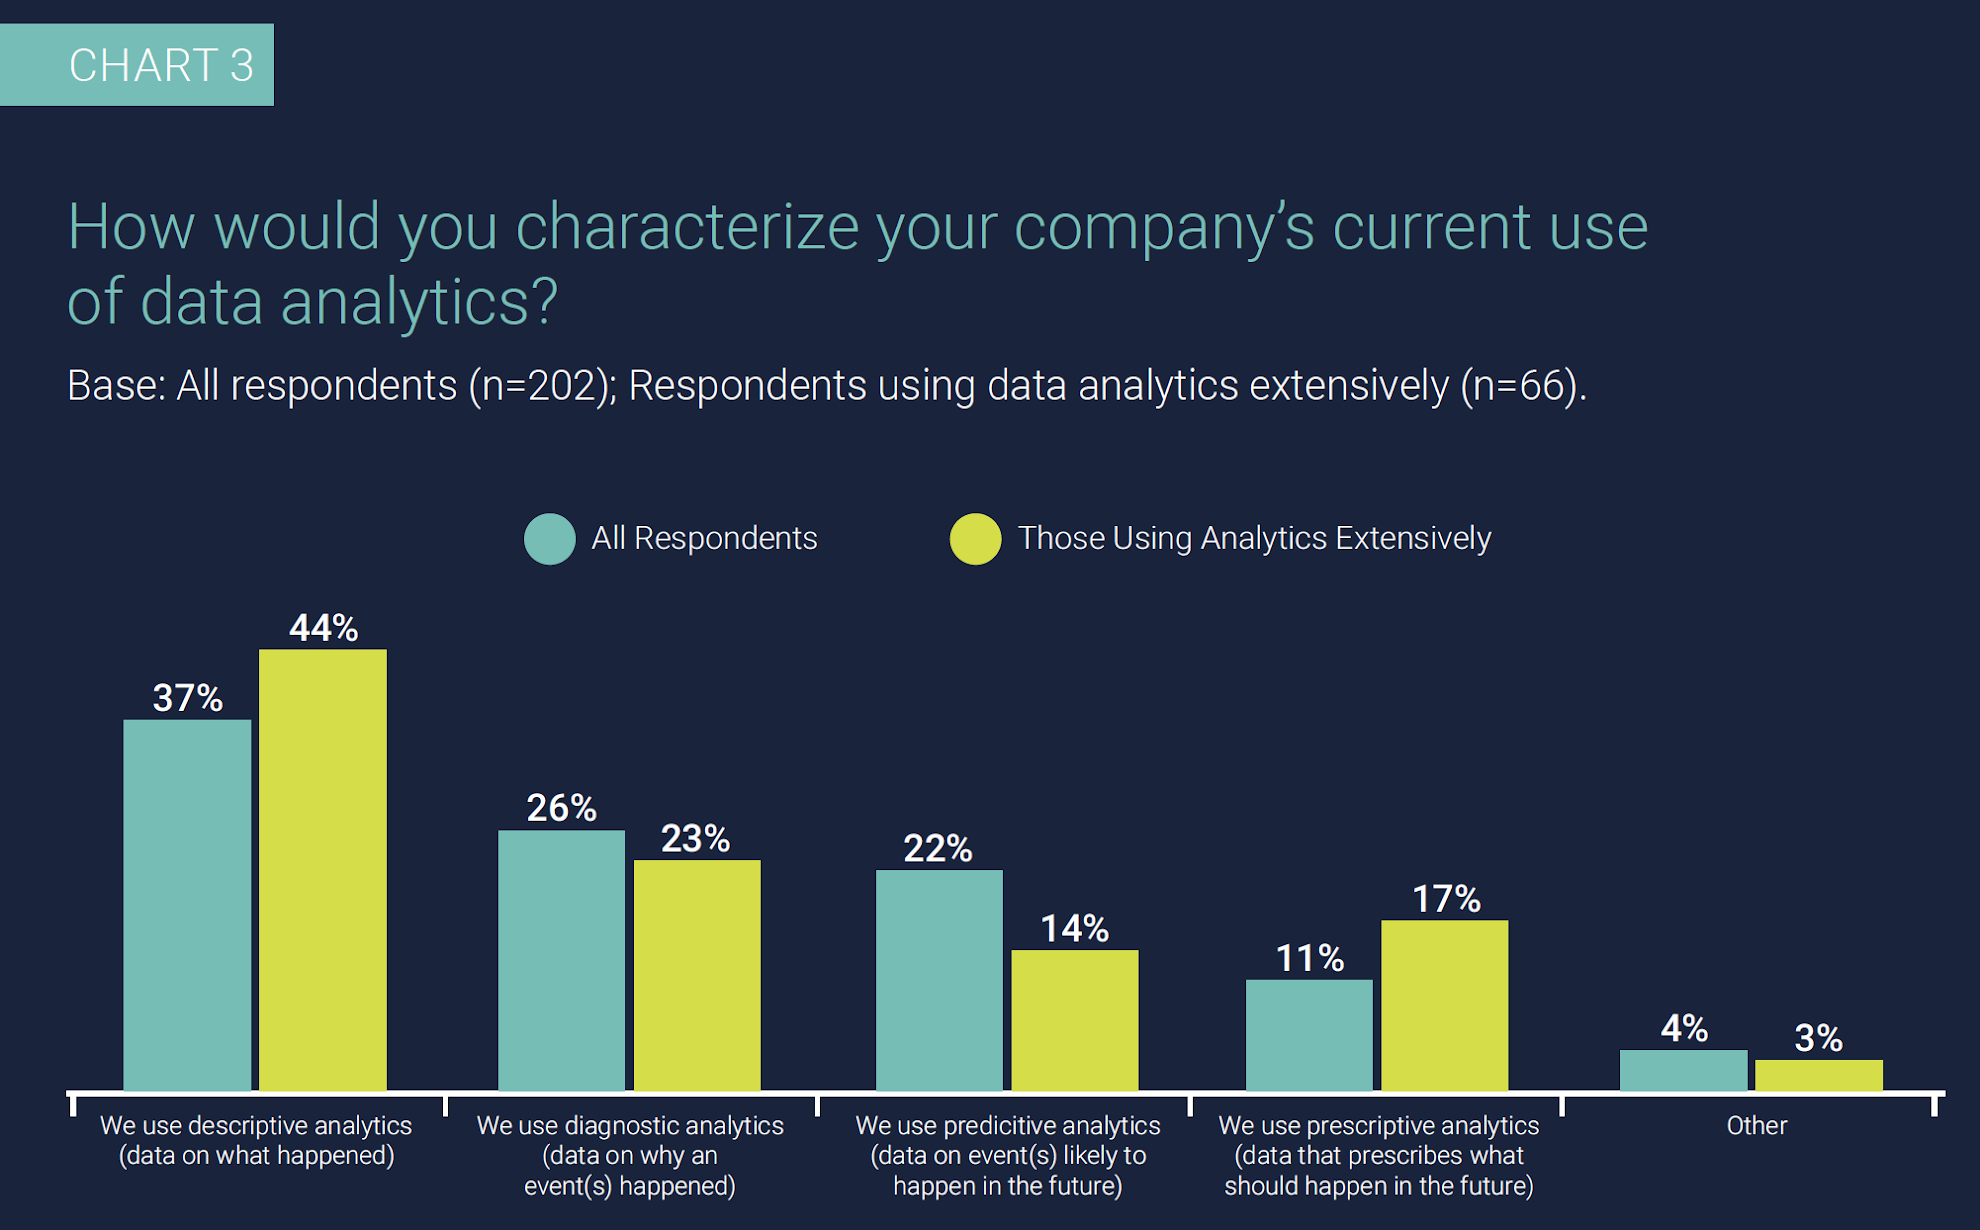 Chart 3: How would you characterize your company's current use of data analytics? Base: All respondents (n=202); Respondents using data analytics extensively (n=66).